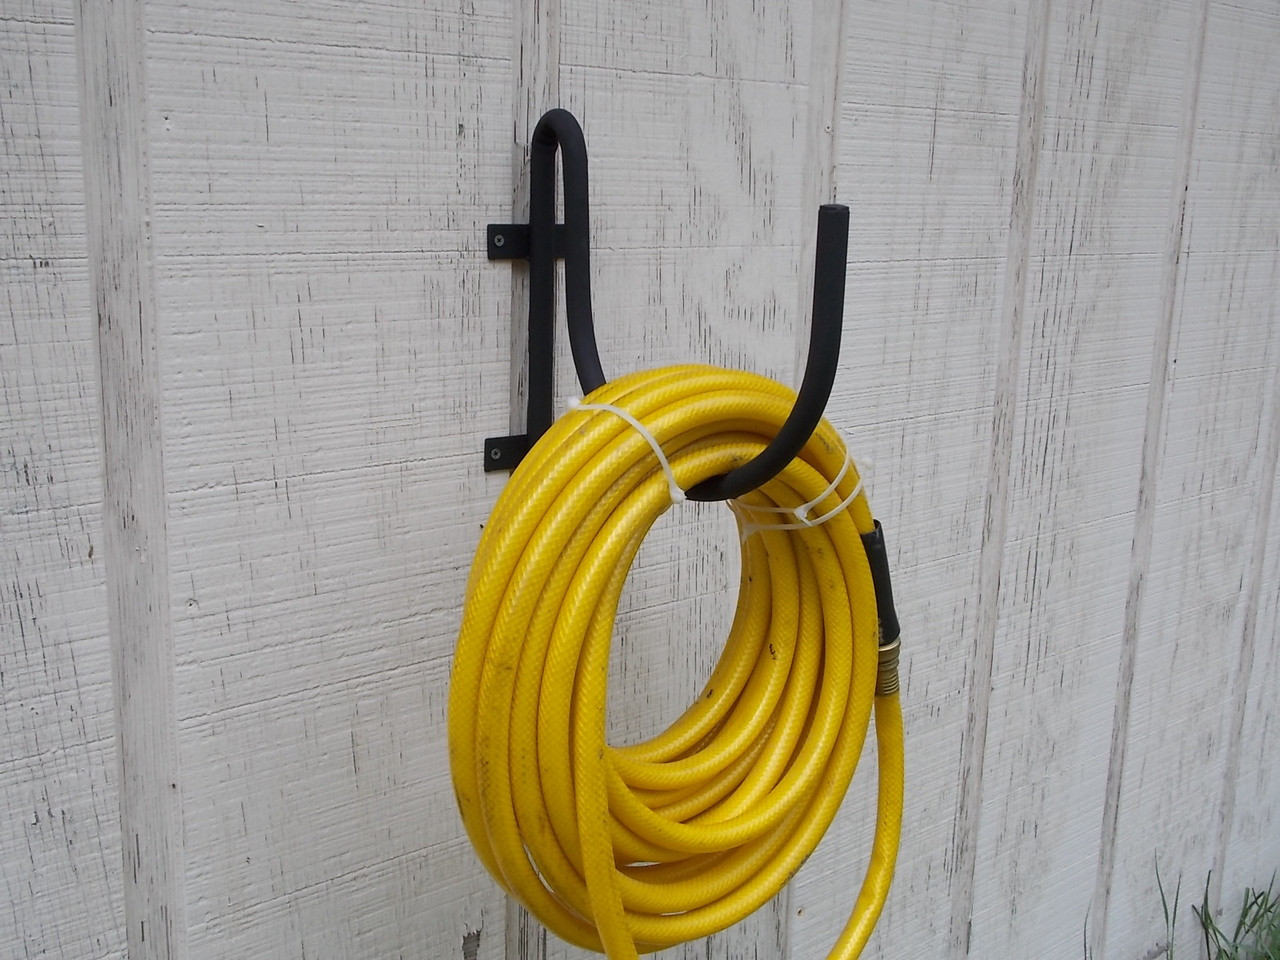 Wall Mount Garden Hose Holder Black Wrought Iron By The Lazy Scroll.  Loading Zoom